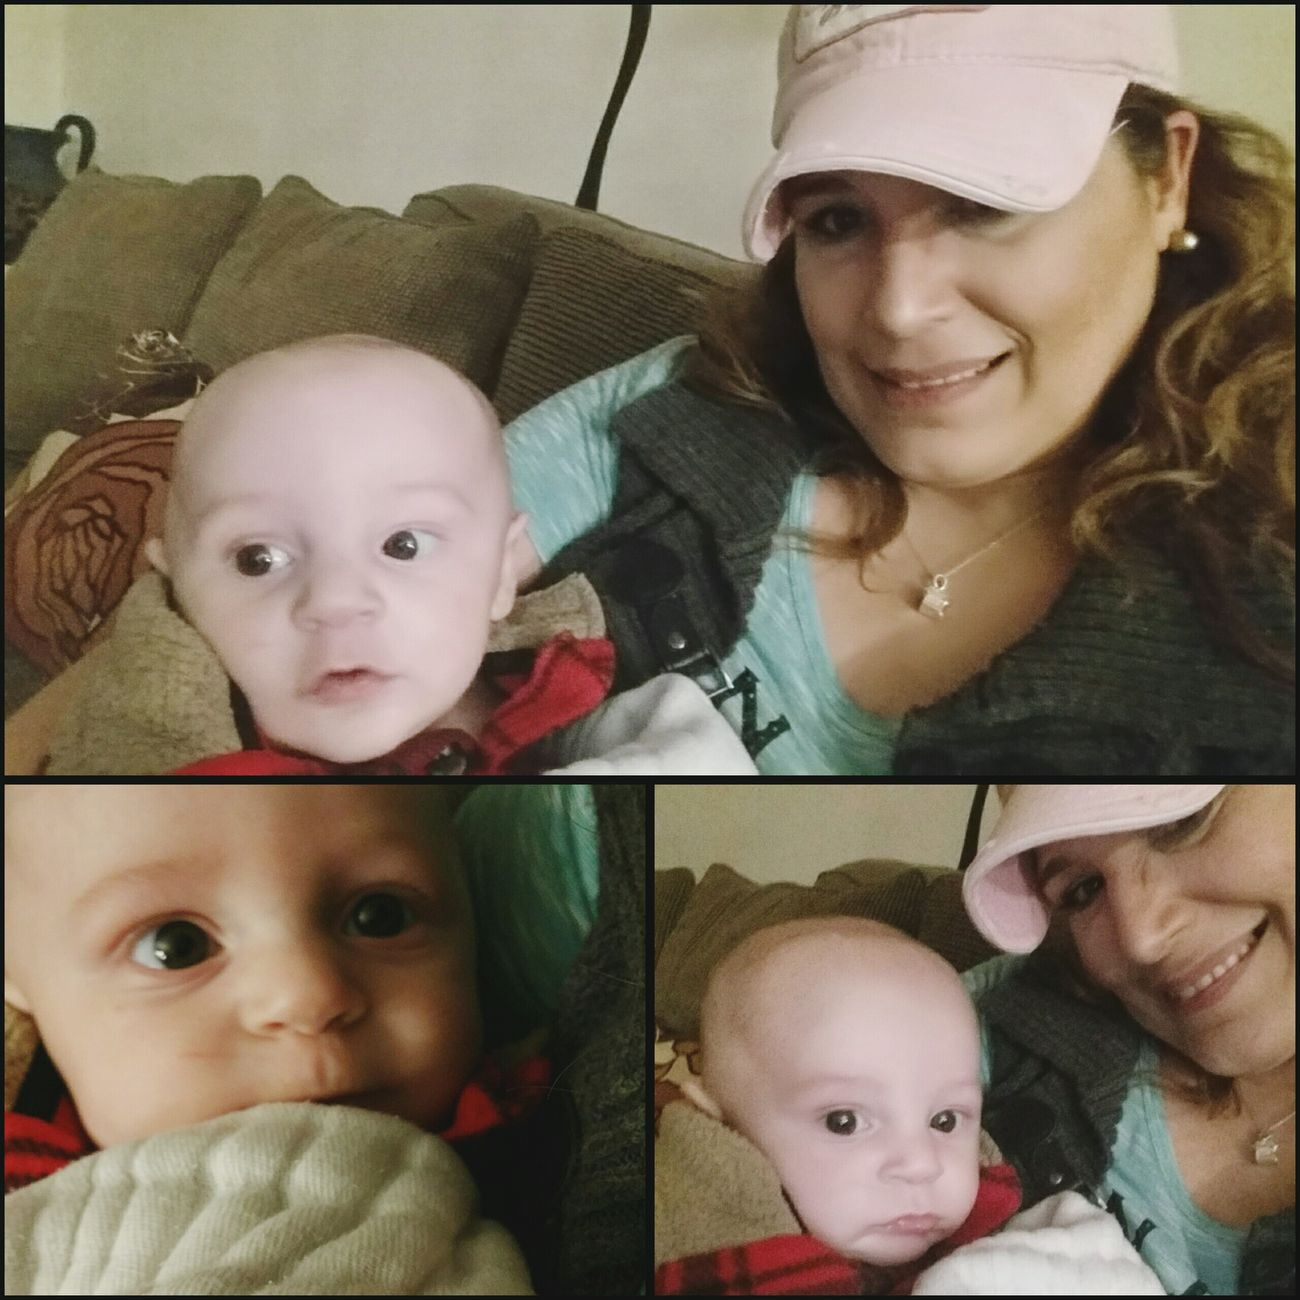 Precious Rylan came to visit us today Beautifulbabyrylan Heisgorgeous Eccmdpeople